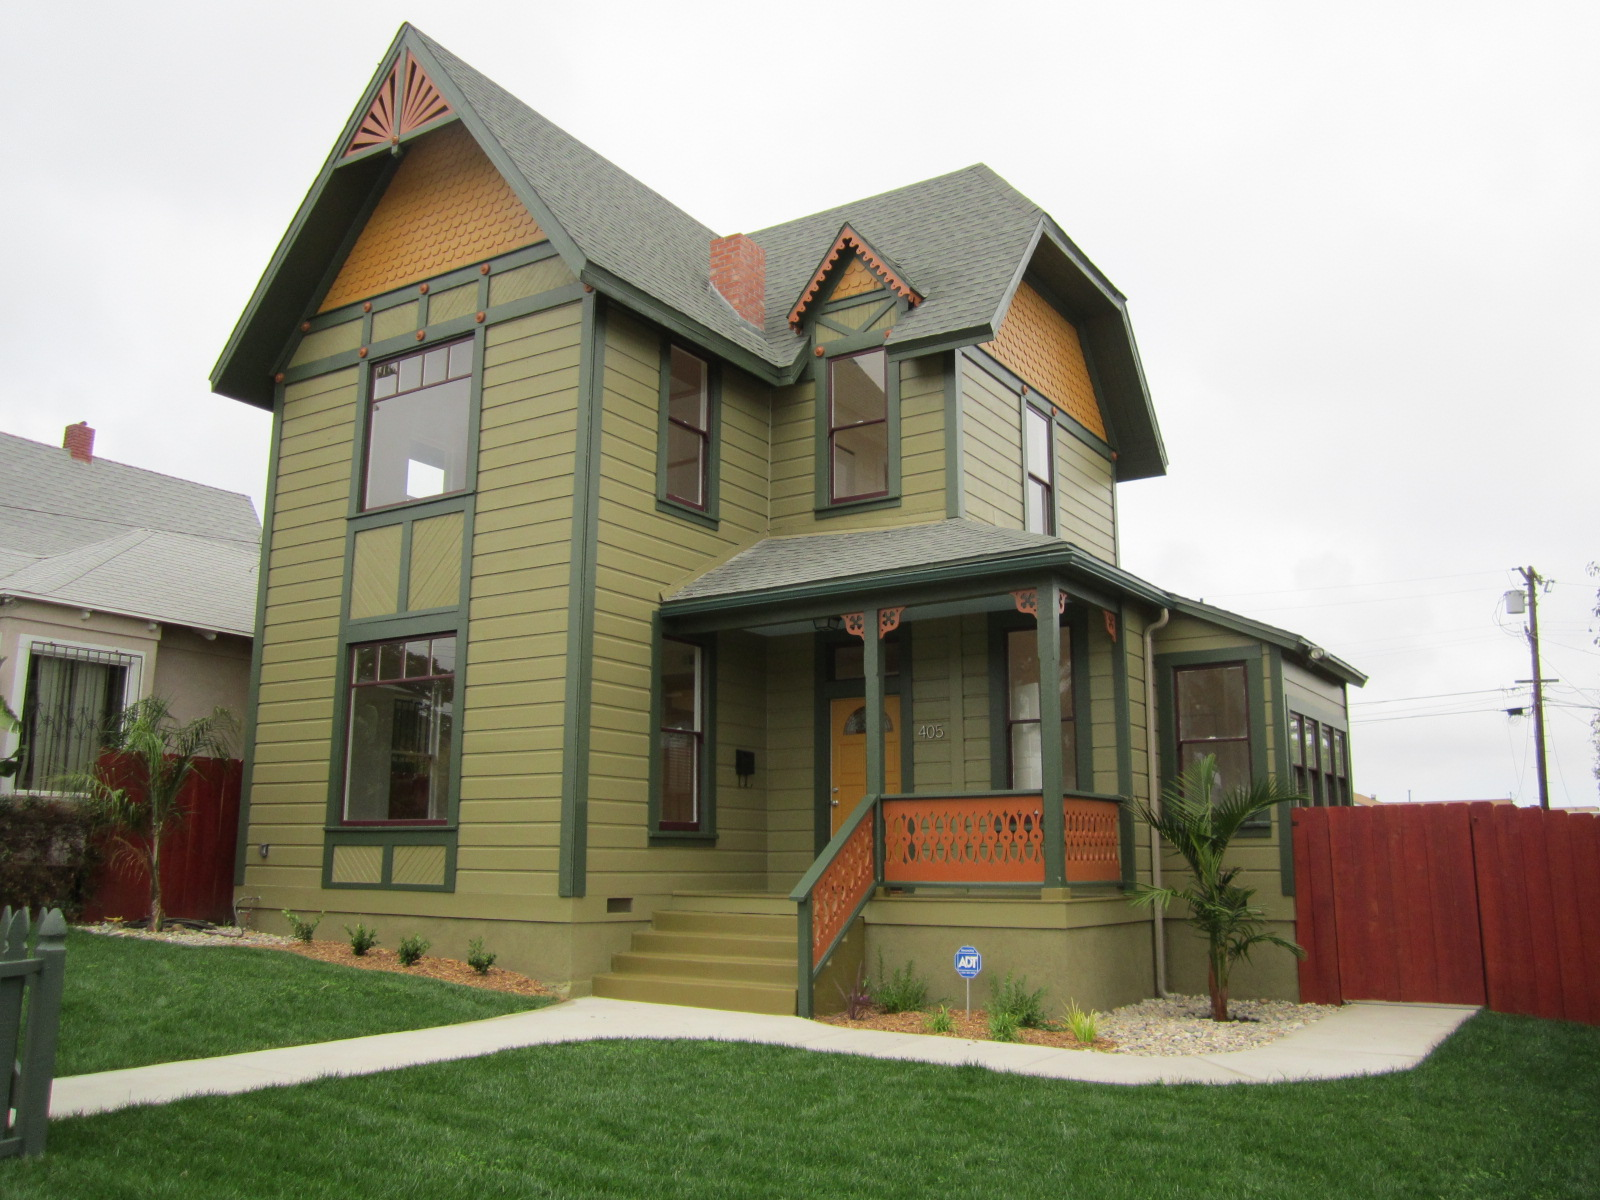 Grant hill park painted lady for Pictures of painted houses exteriors